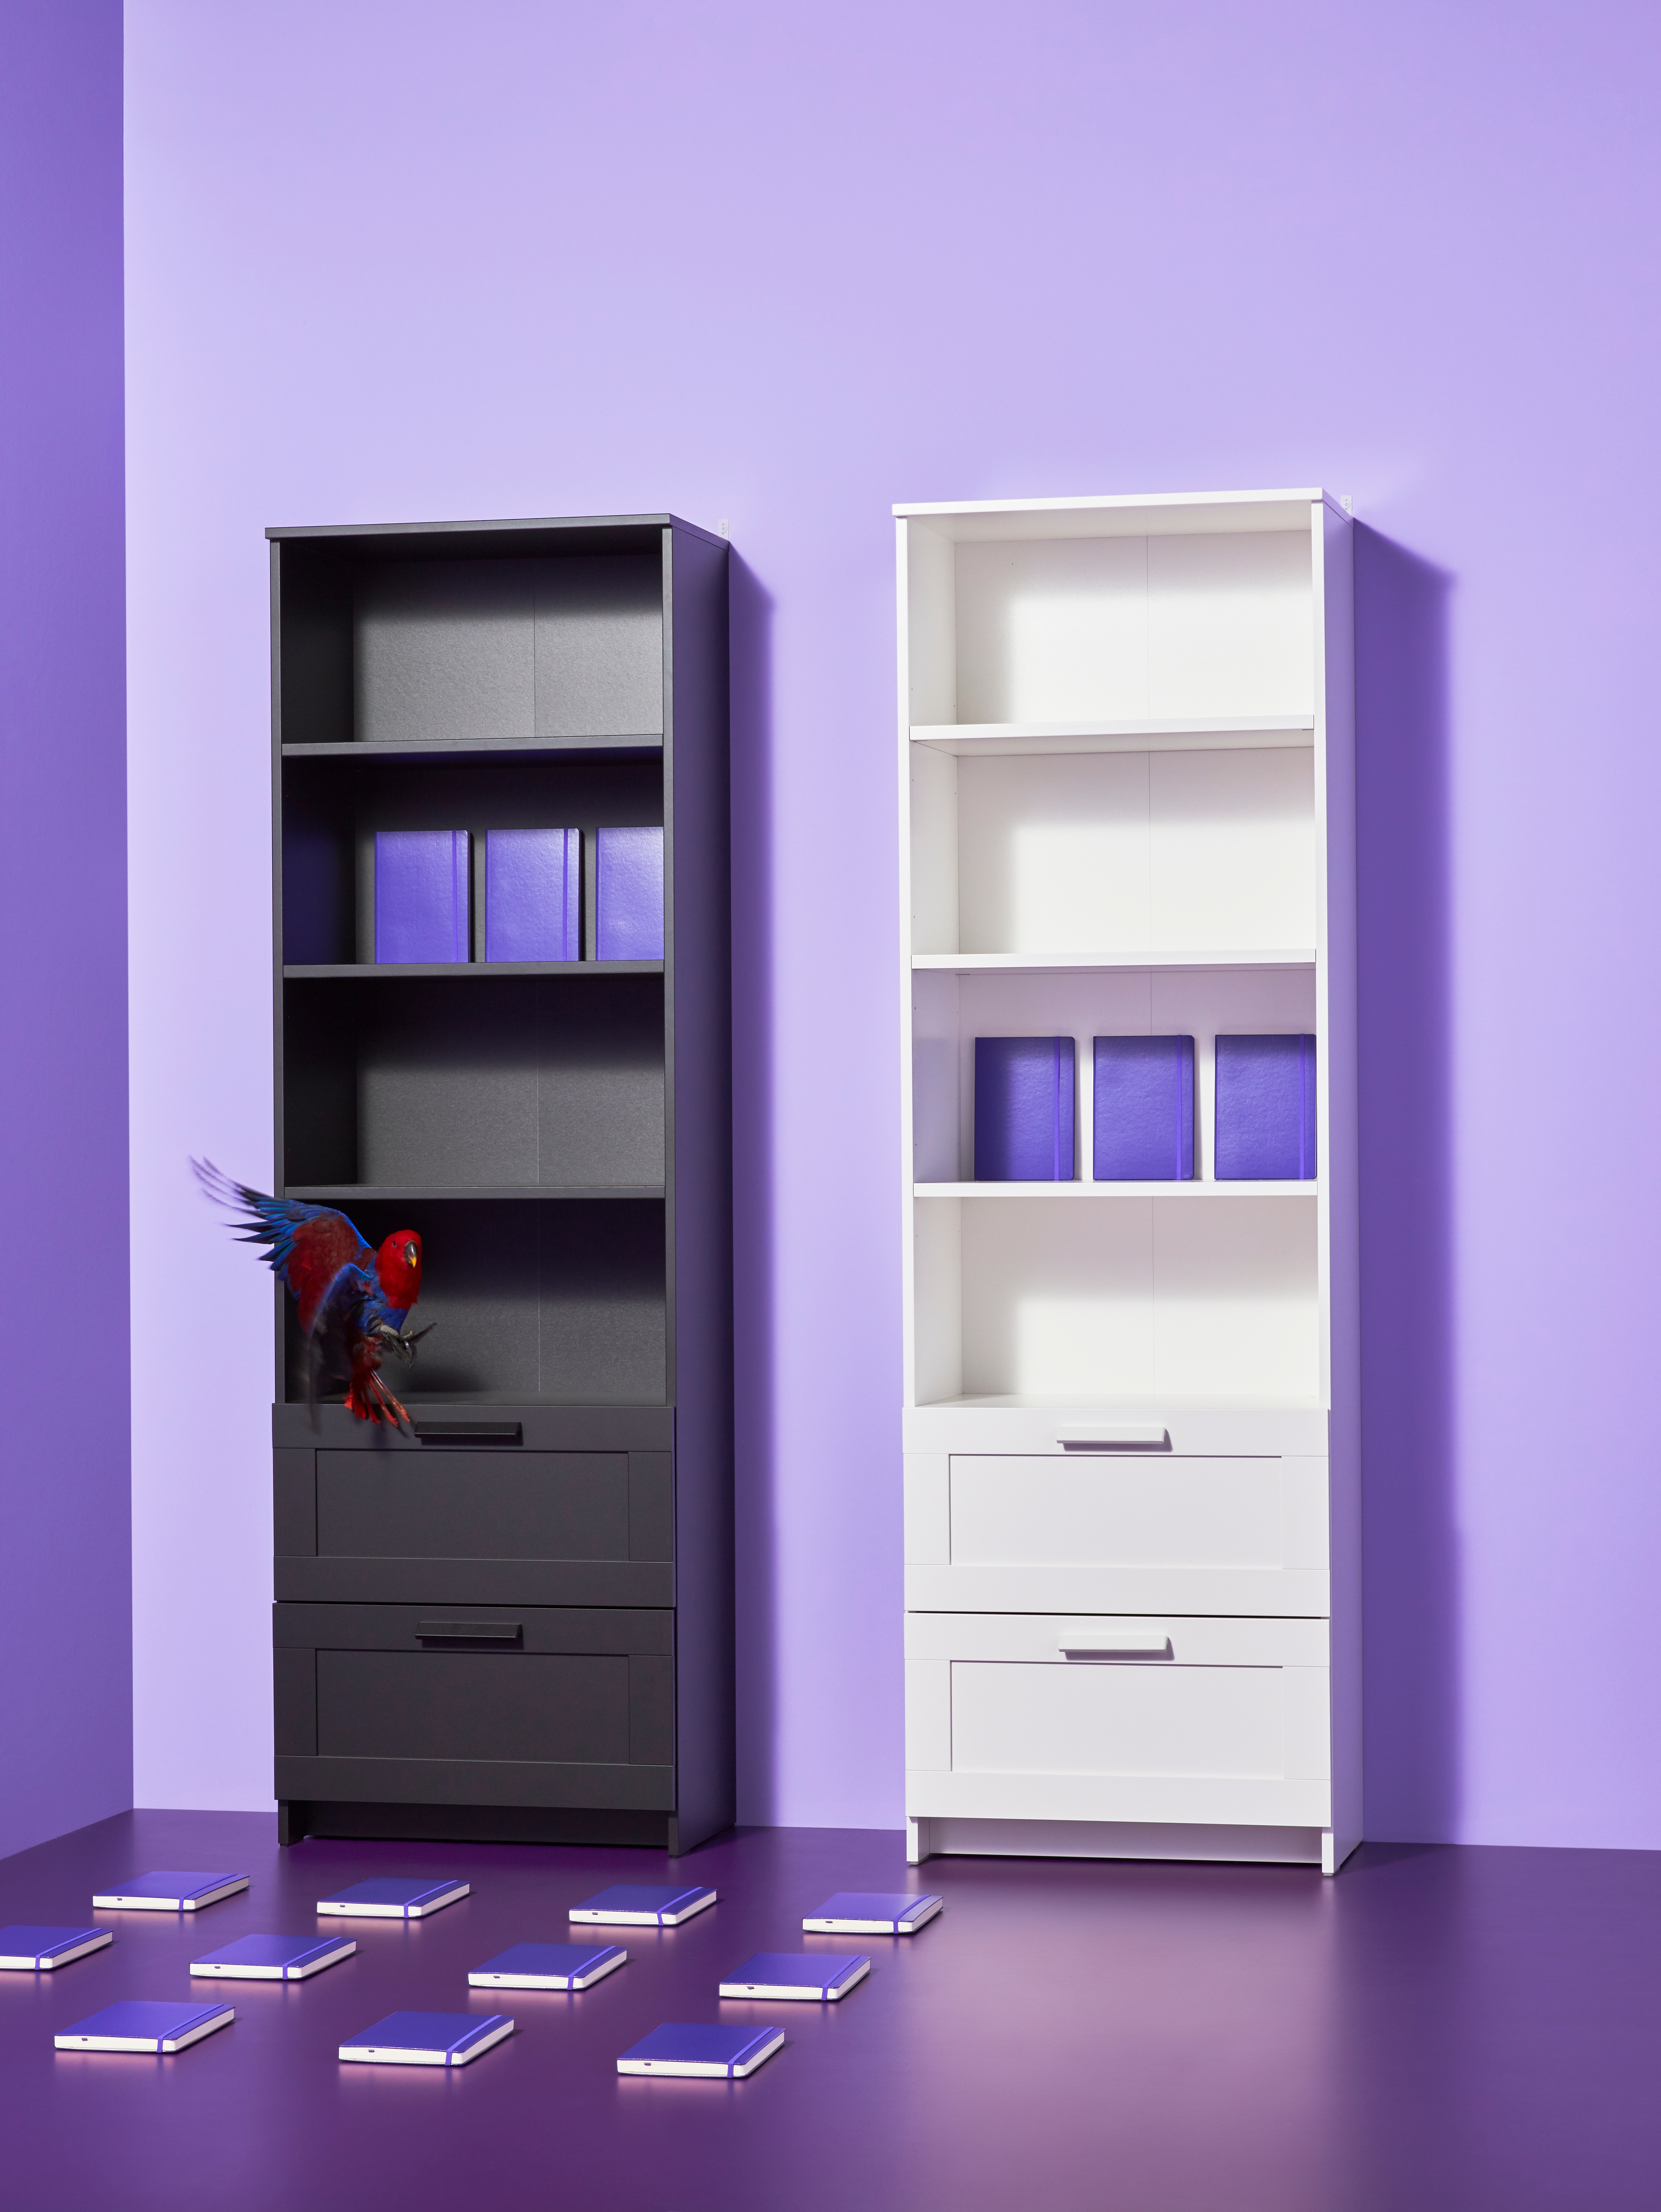 Empty purple room with two tall wooden bookcases in black and white, colourful parrot and notebooks arranged on the floor.